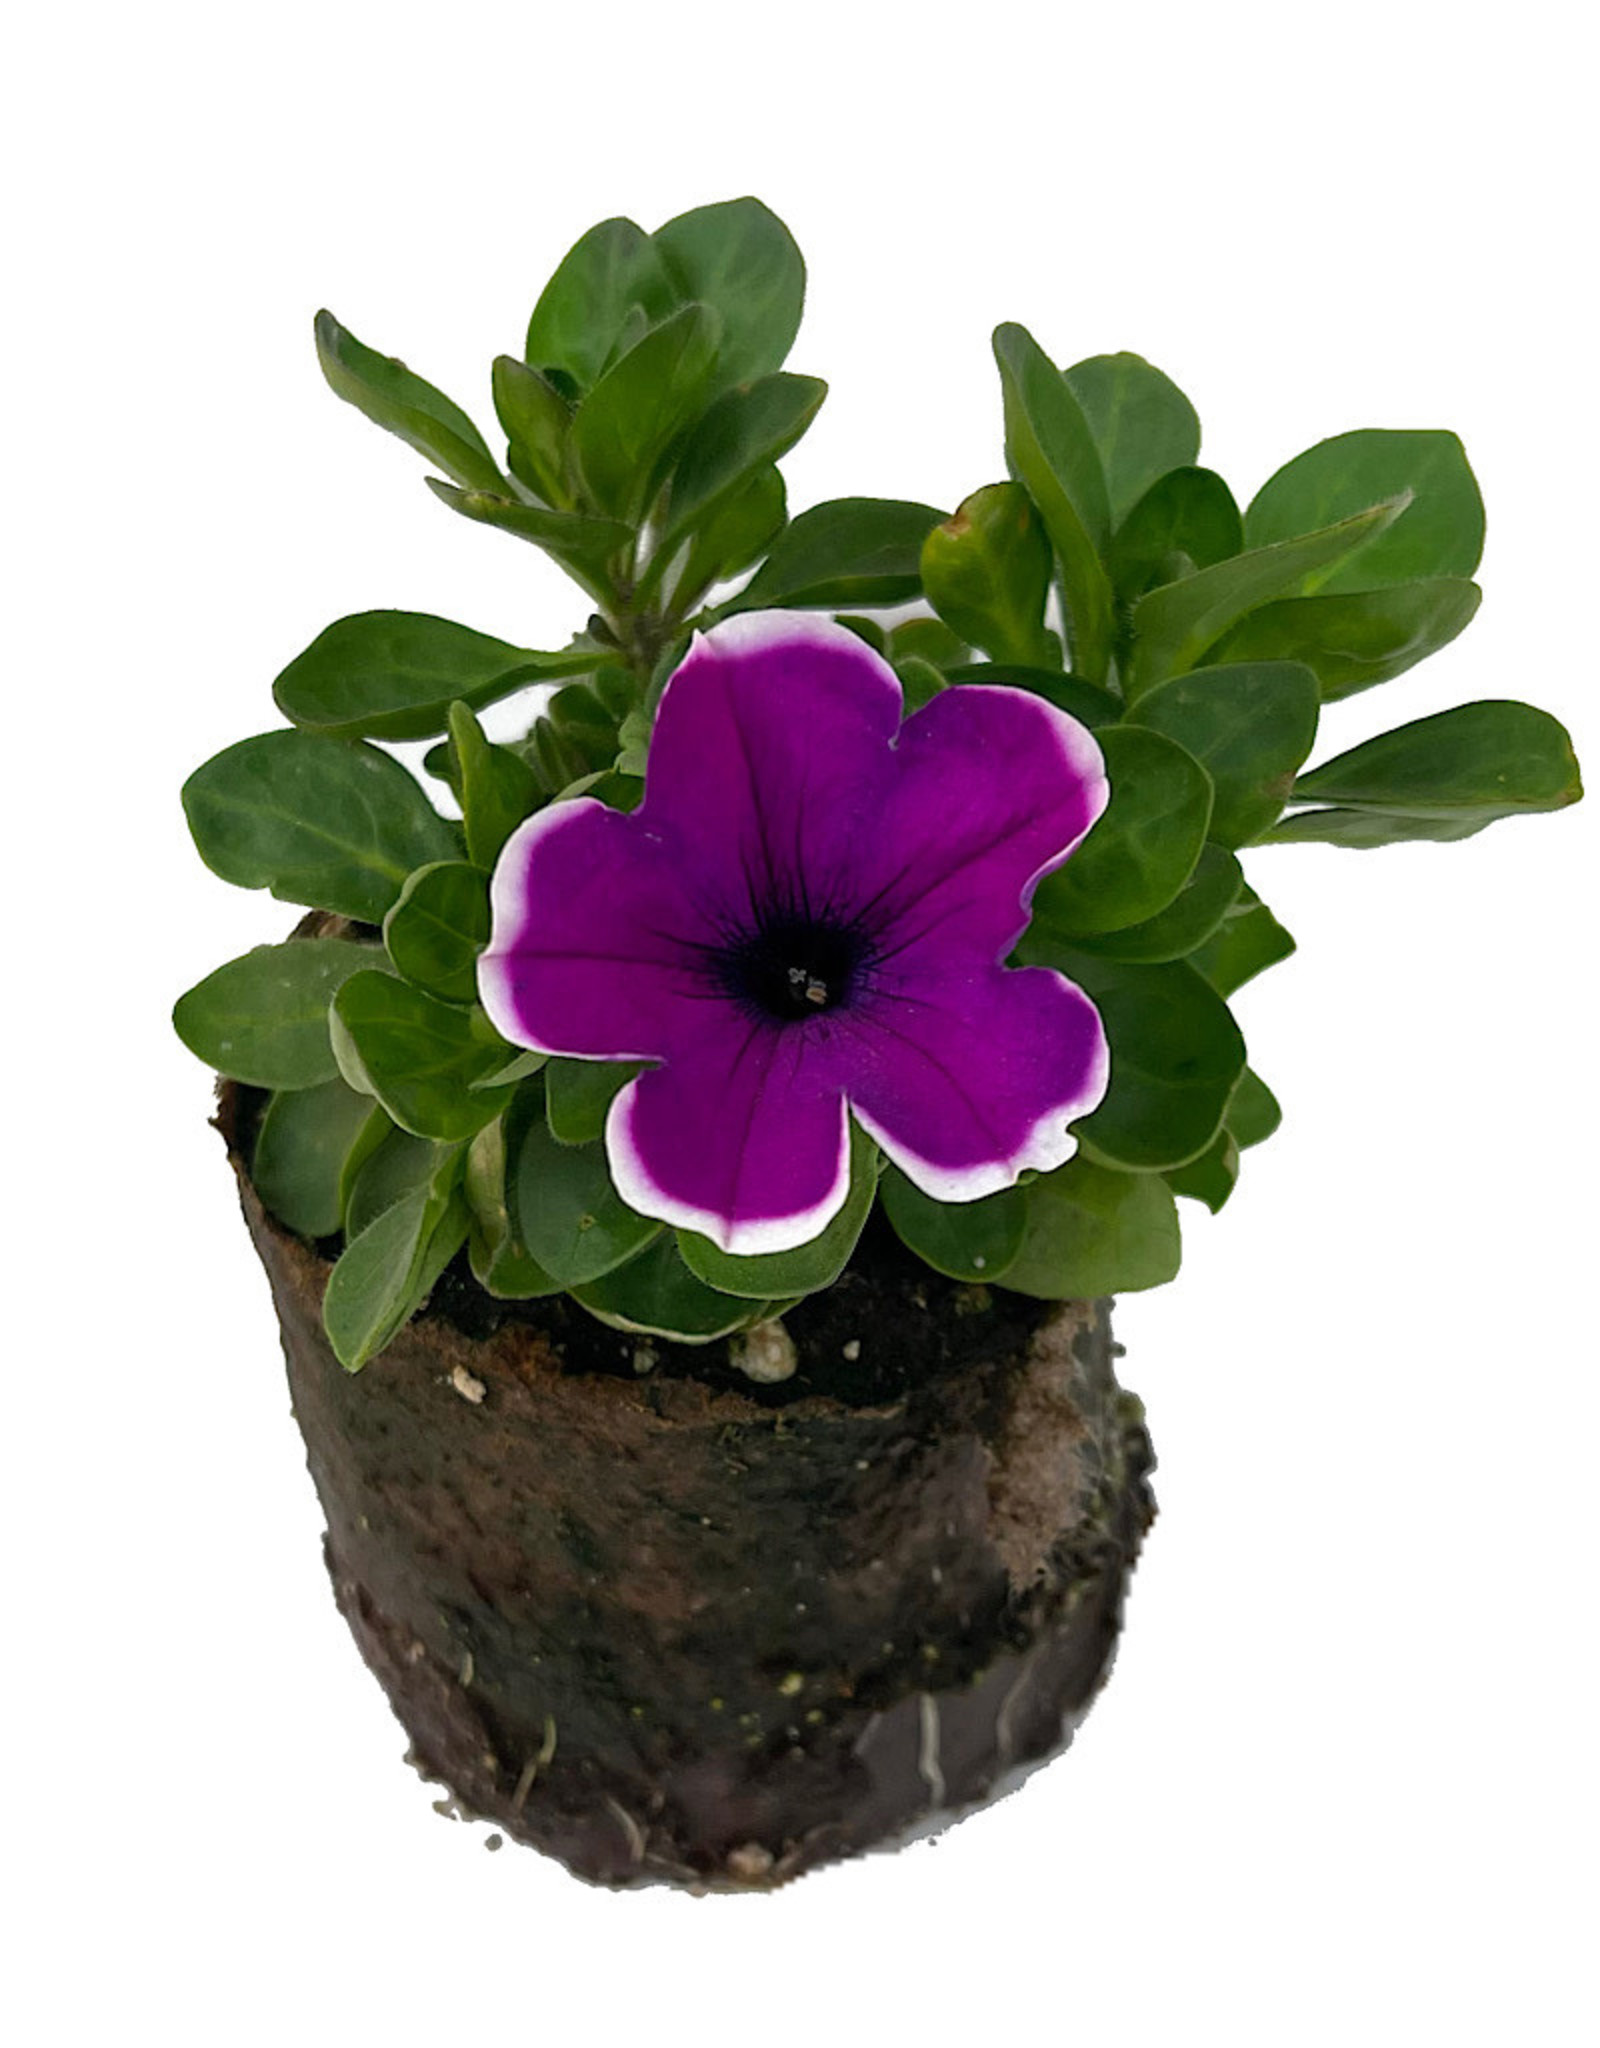 Petunia 'Main Stage Violet Picotee' 4 inch